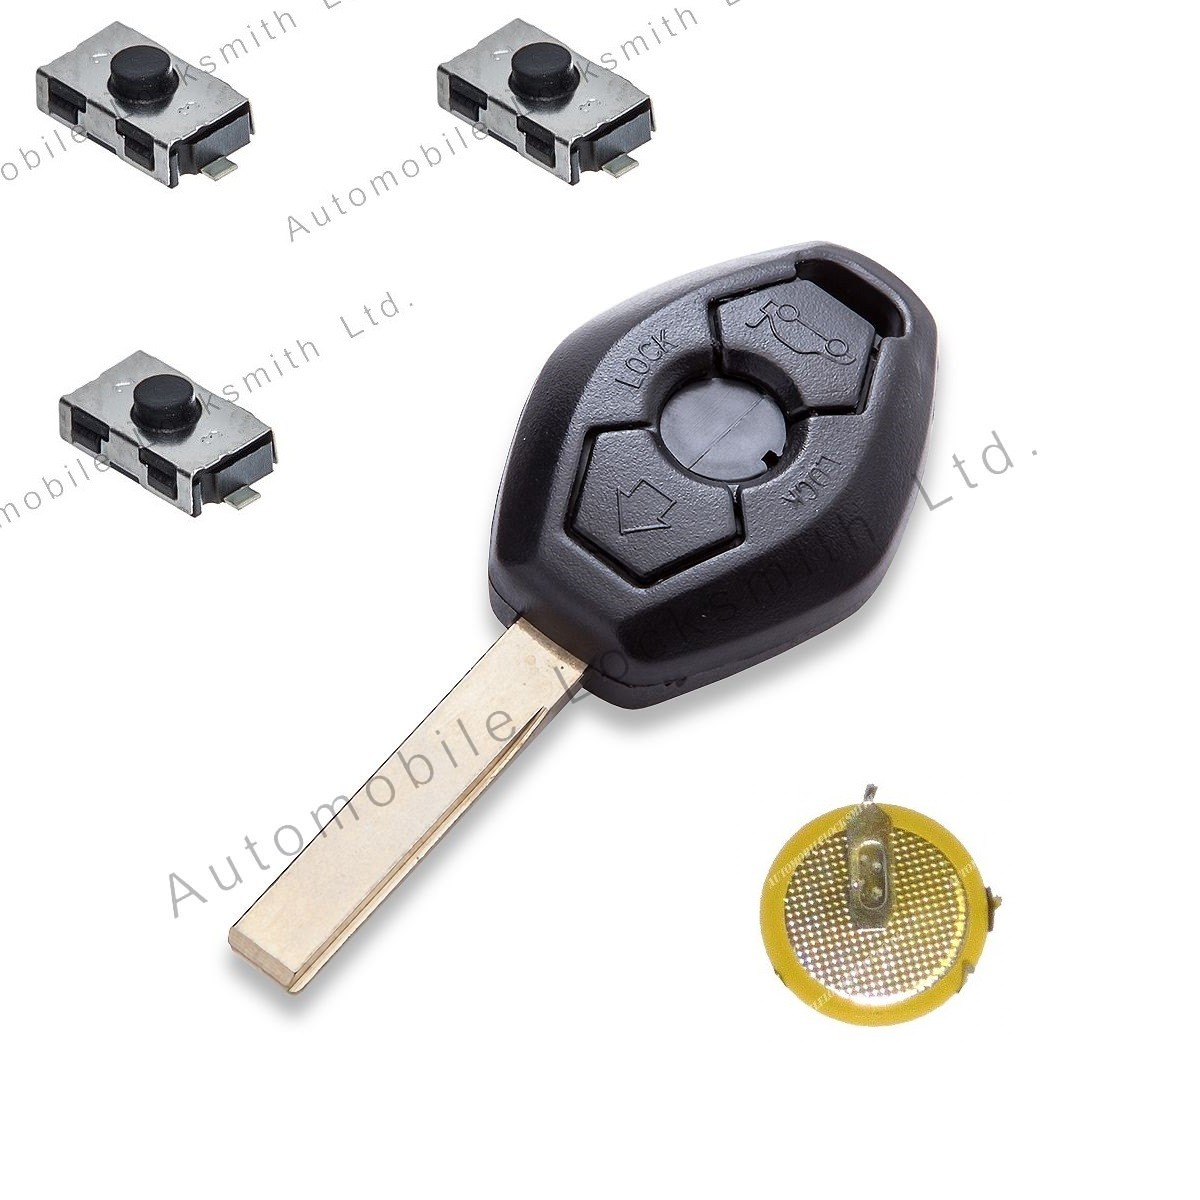 DIY Repair kit fot BMW 3 button remote key with HU92 blade